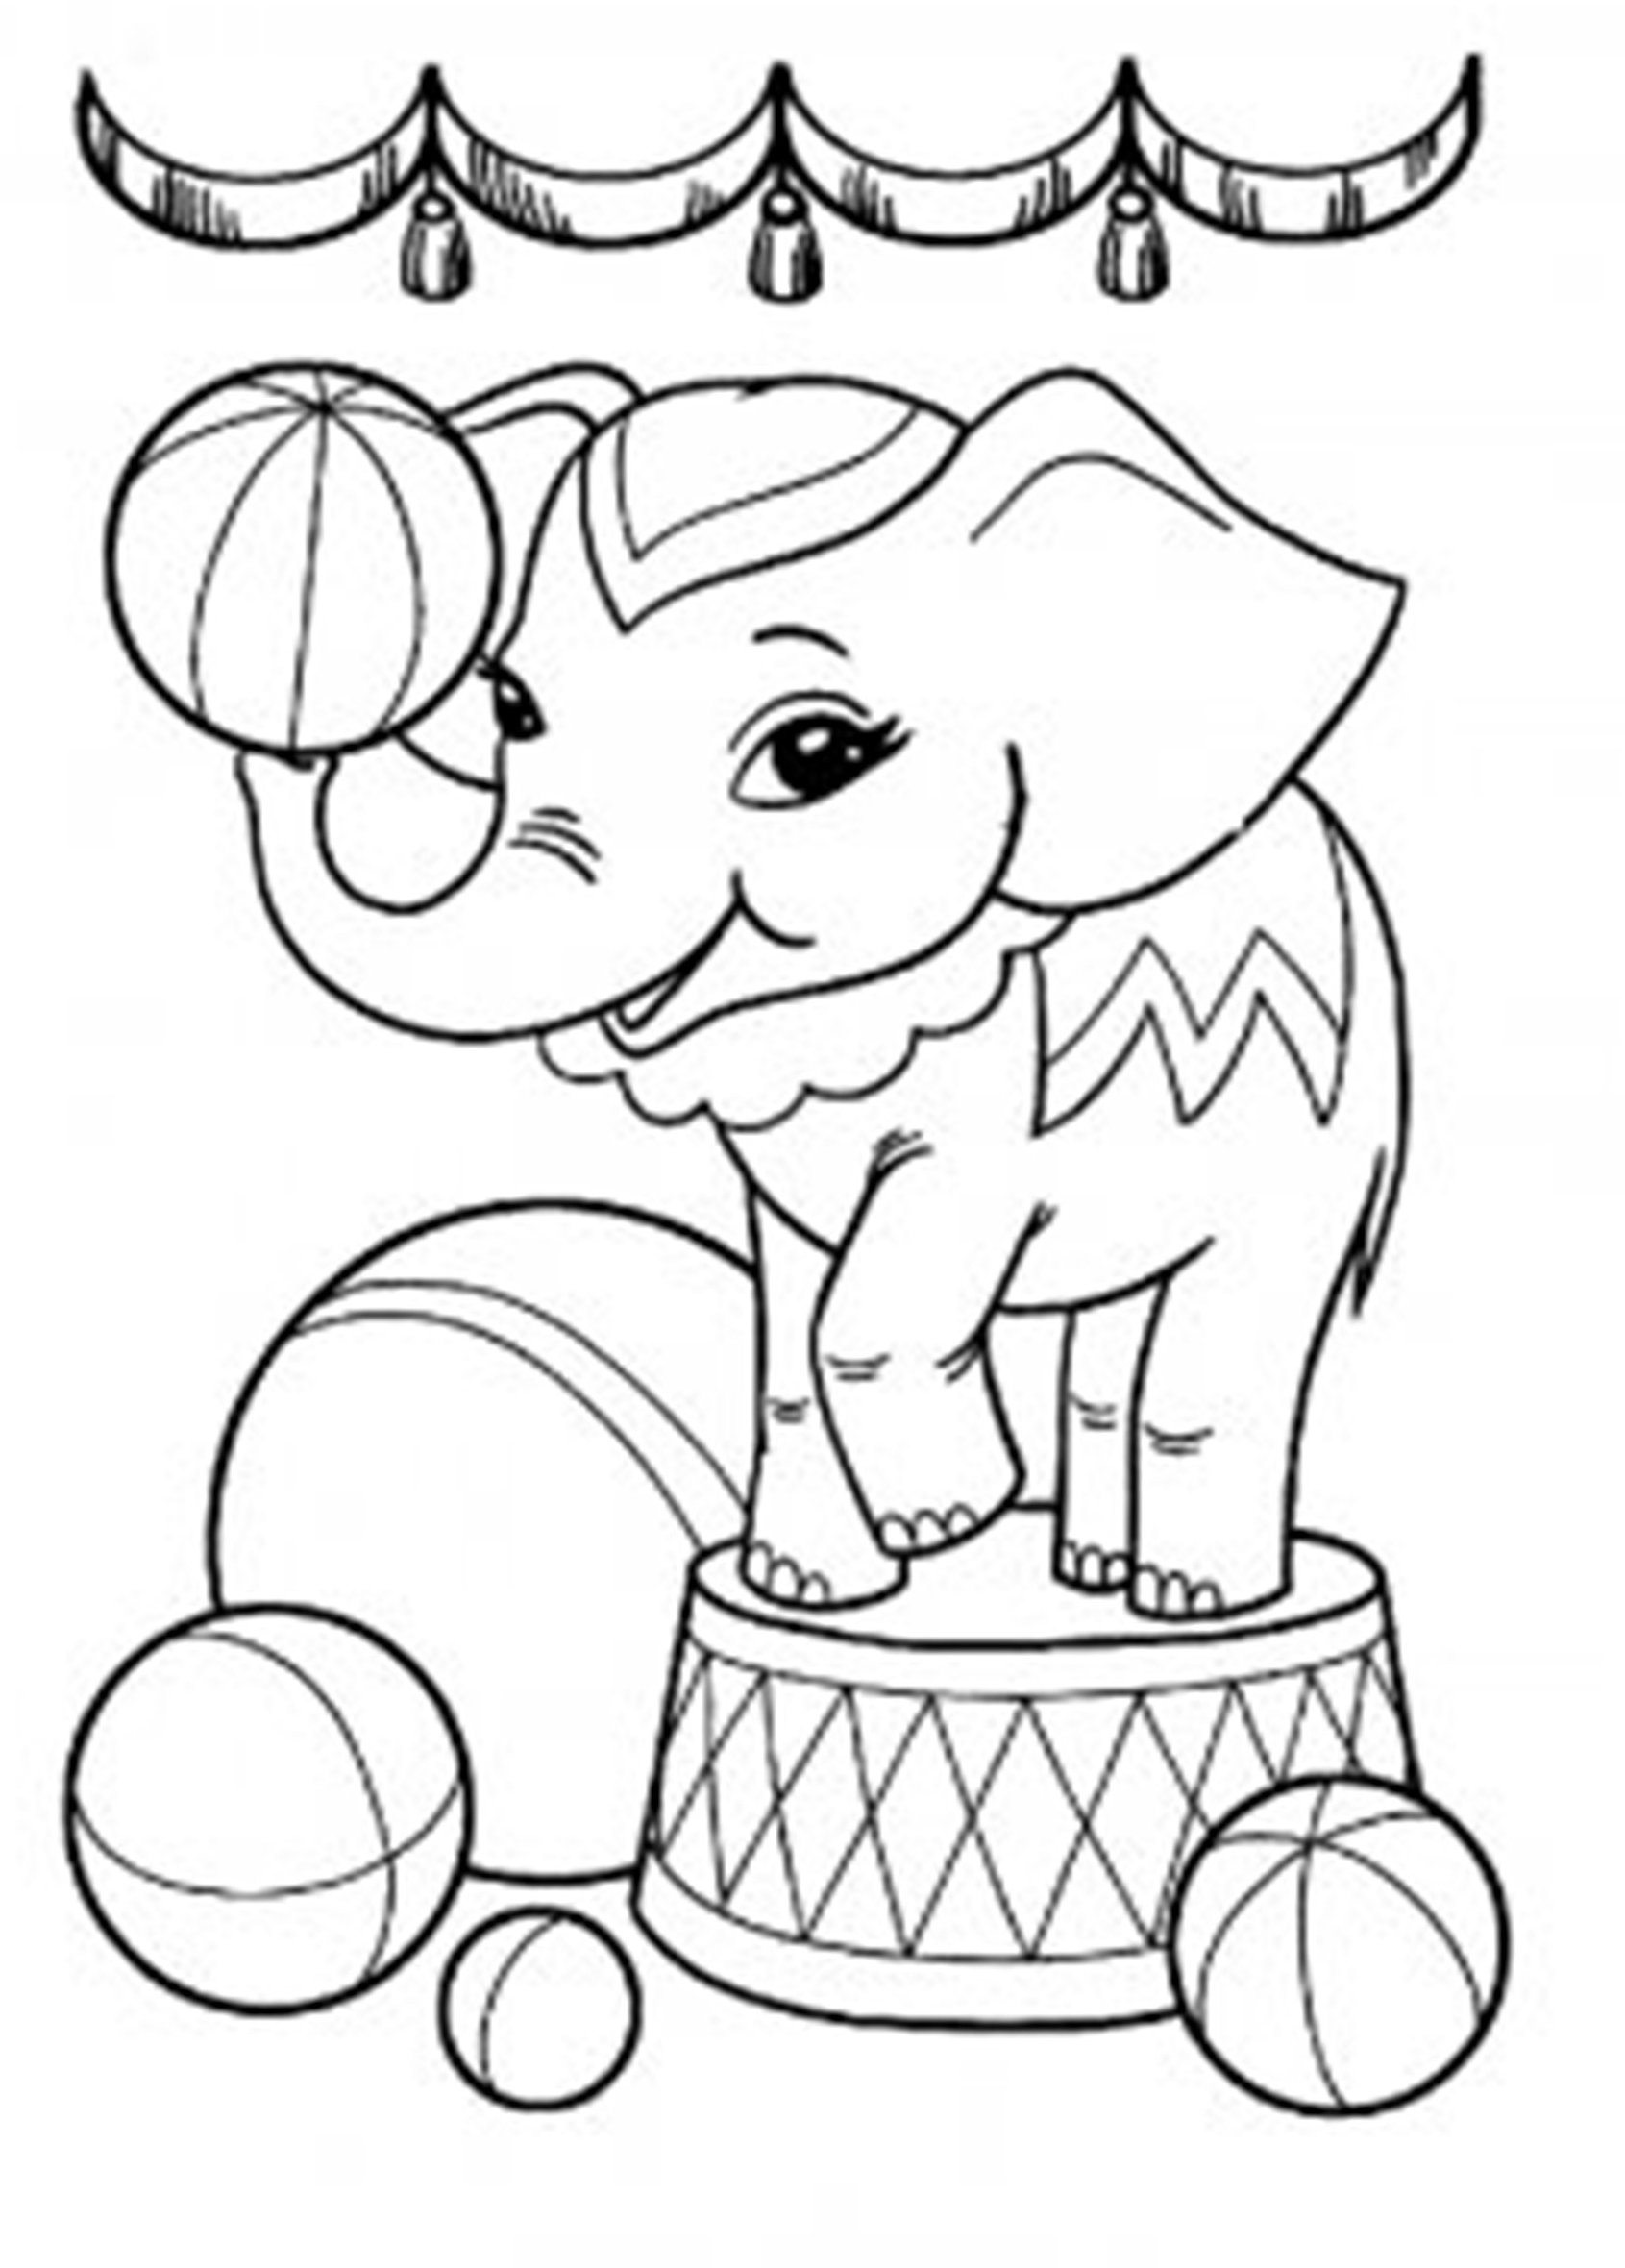 elephant color pages elephant coloring pages for kids printable for free elephant color pages